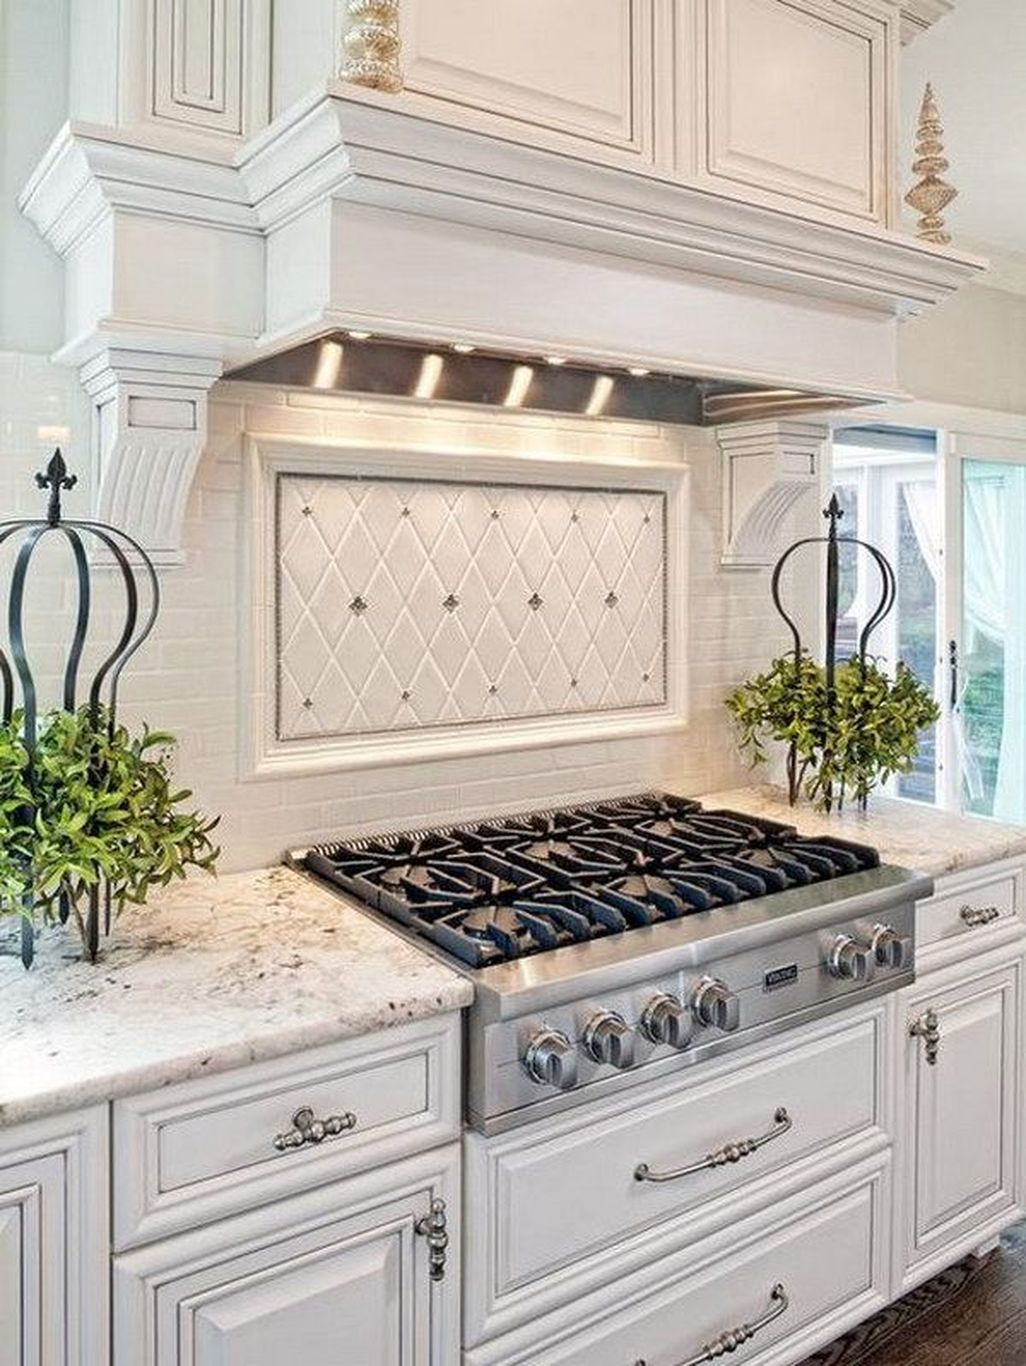 inspiring kitchen backsplash tile design ideas 17 kitchen rh pinterest com